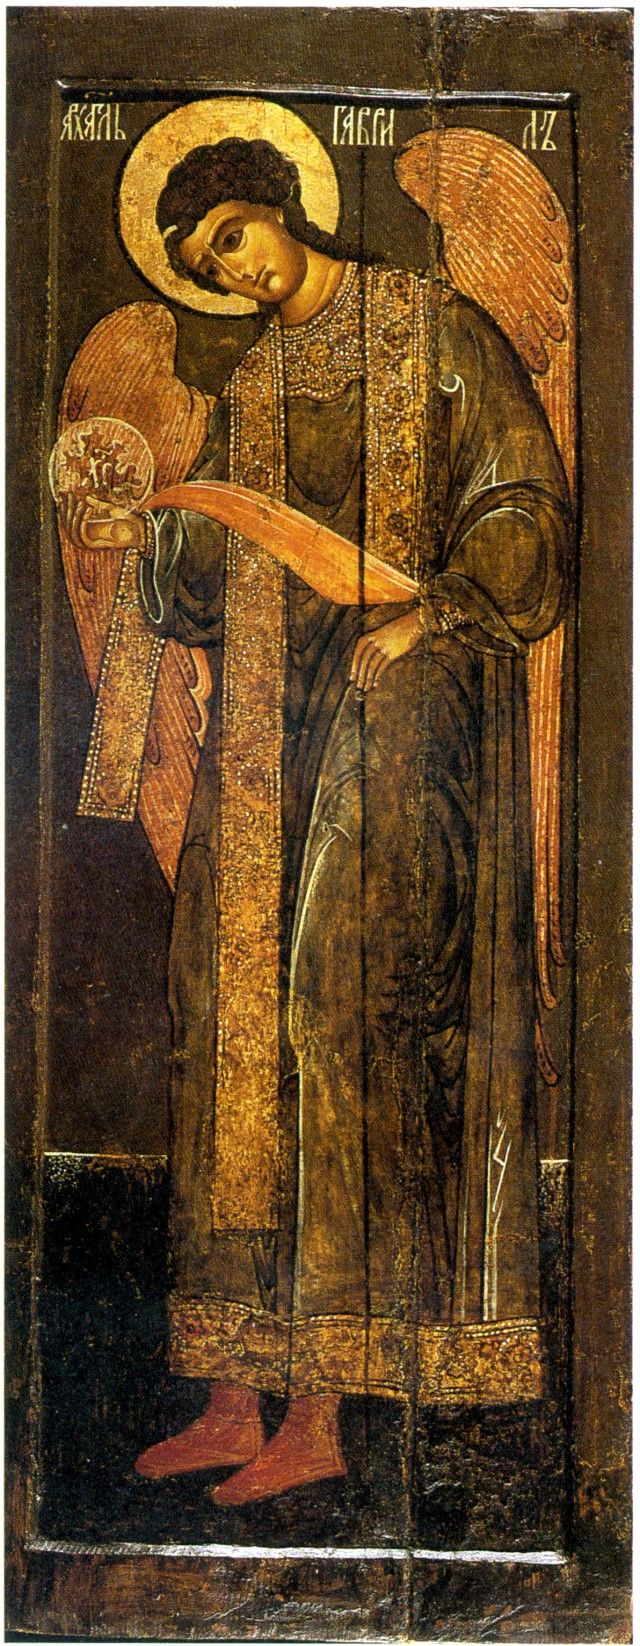 Archangel Gabriel. The icon from the Deesis. Workshop of the Trinity-Sergius Monastery in Clement settlement. The first half of the XVII century.